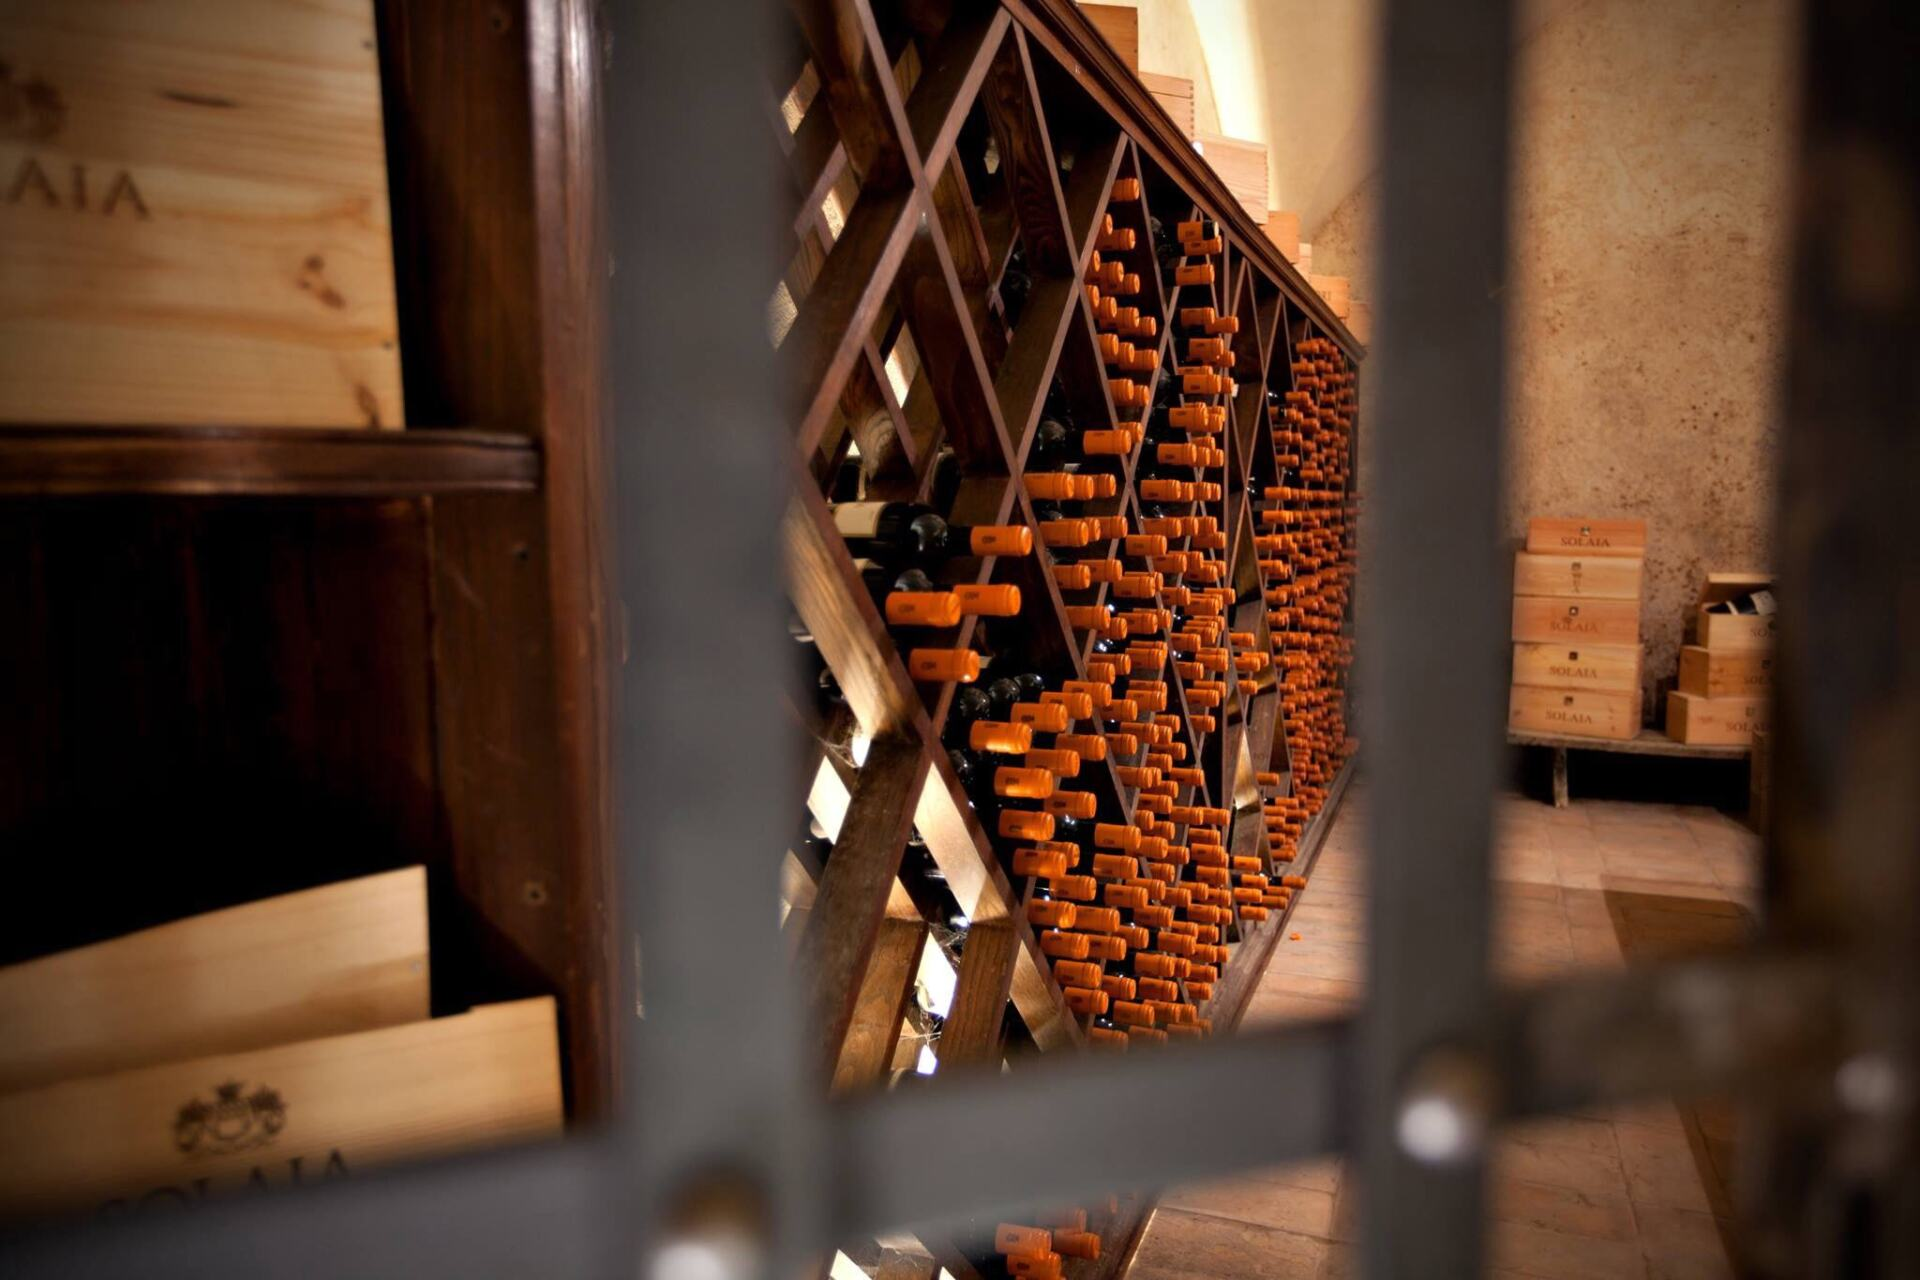 Solaia bottles behind bars in a wine cellar